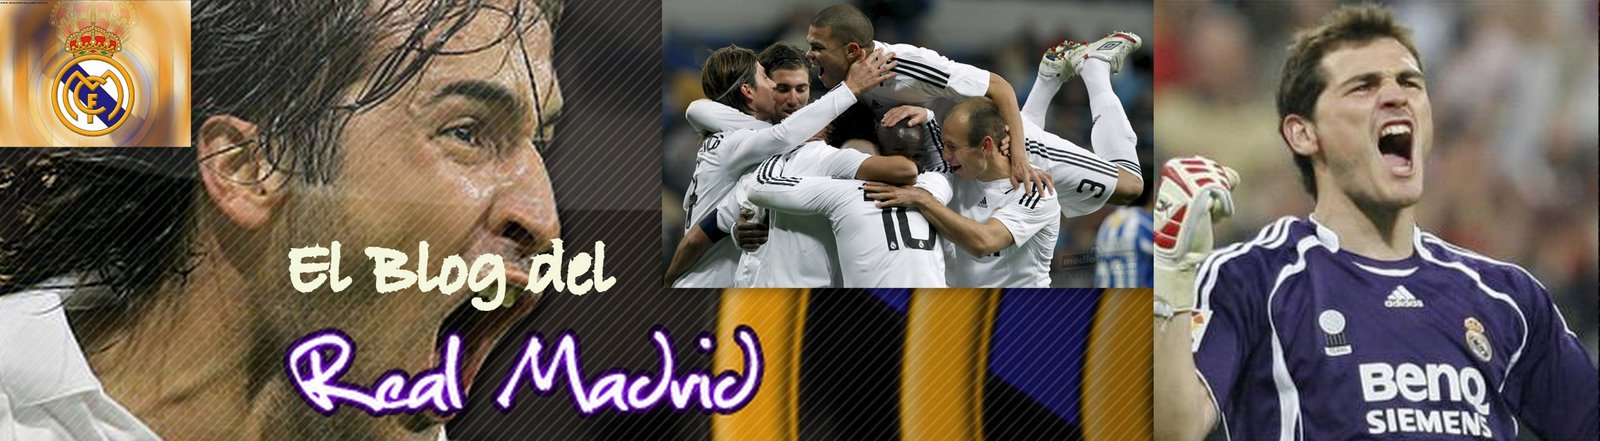 El blog del Real Madrid